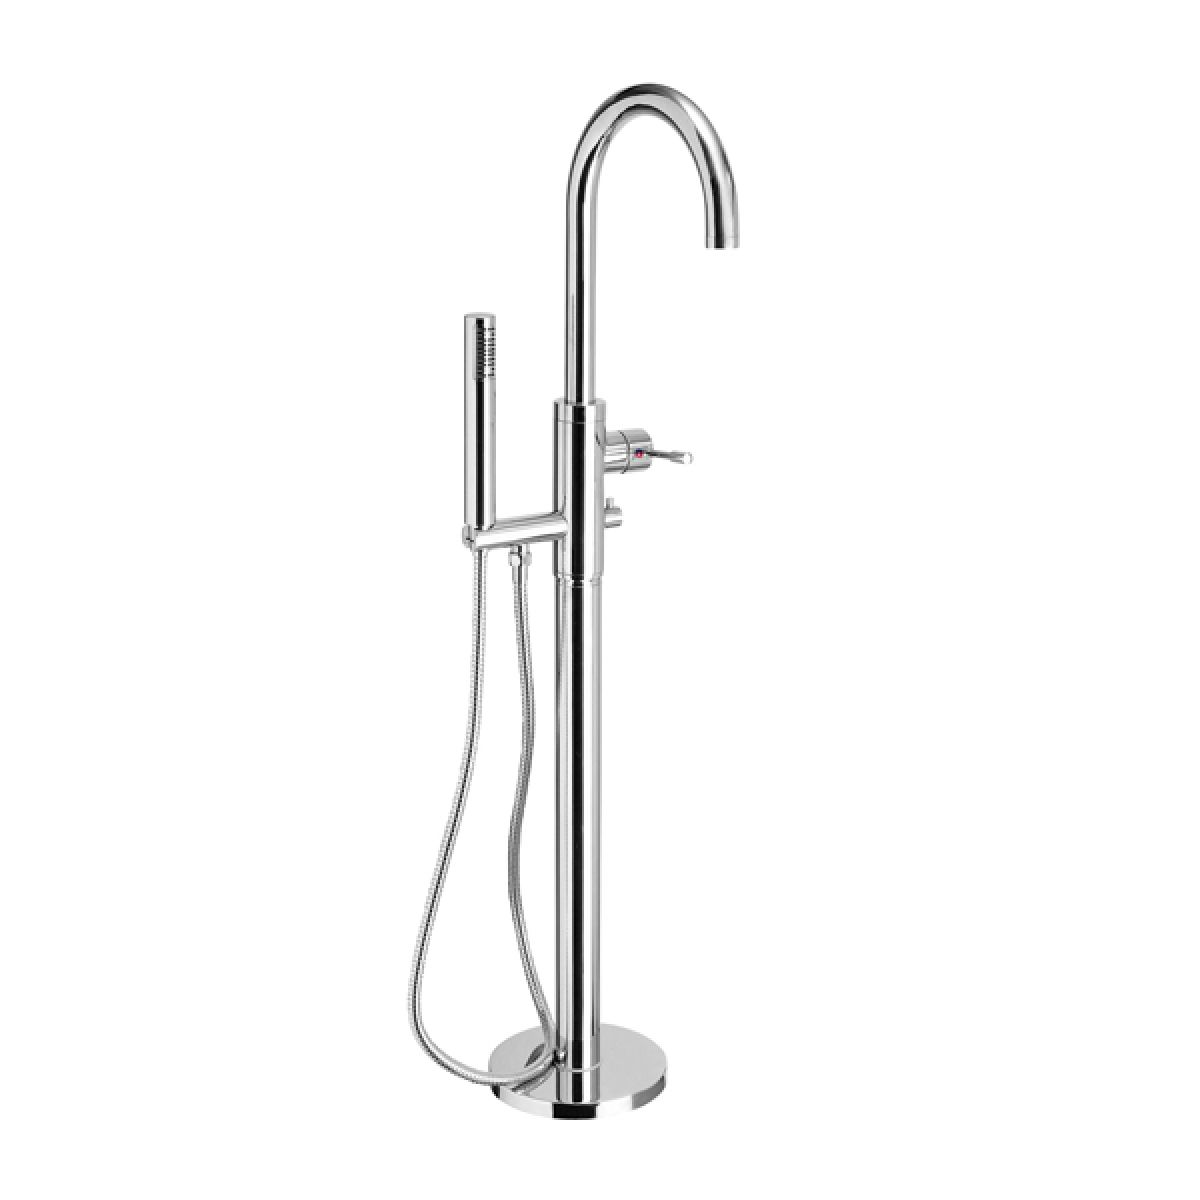 Eurostream Primo Floor Standing Bath Shower Mixer